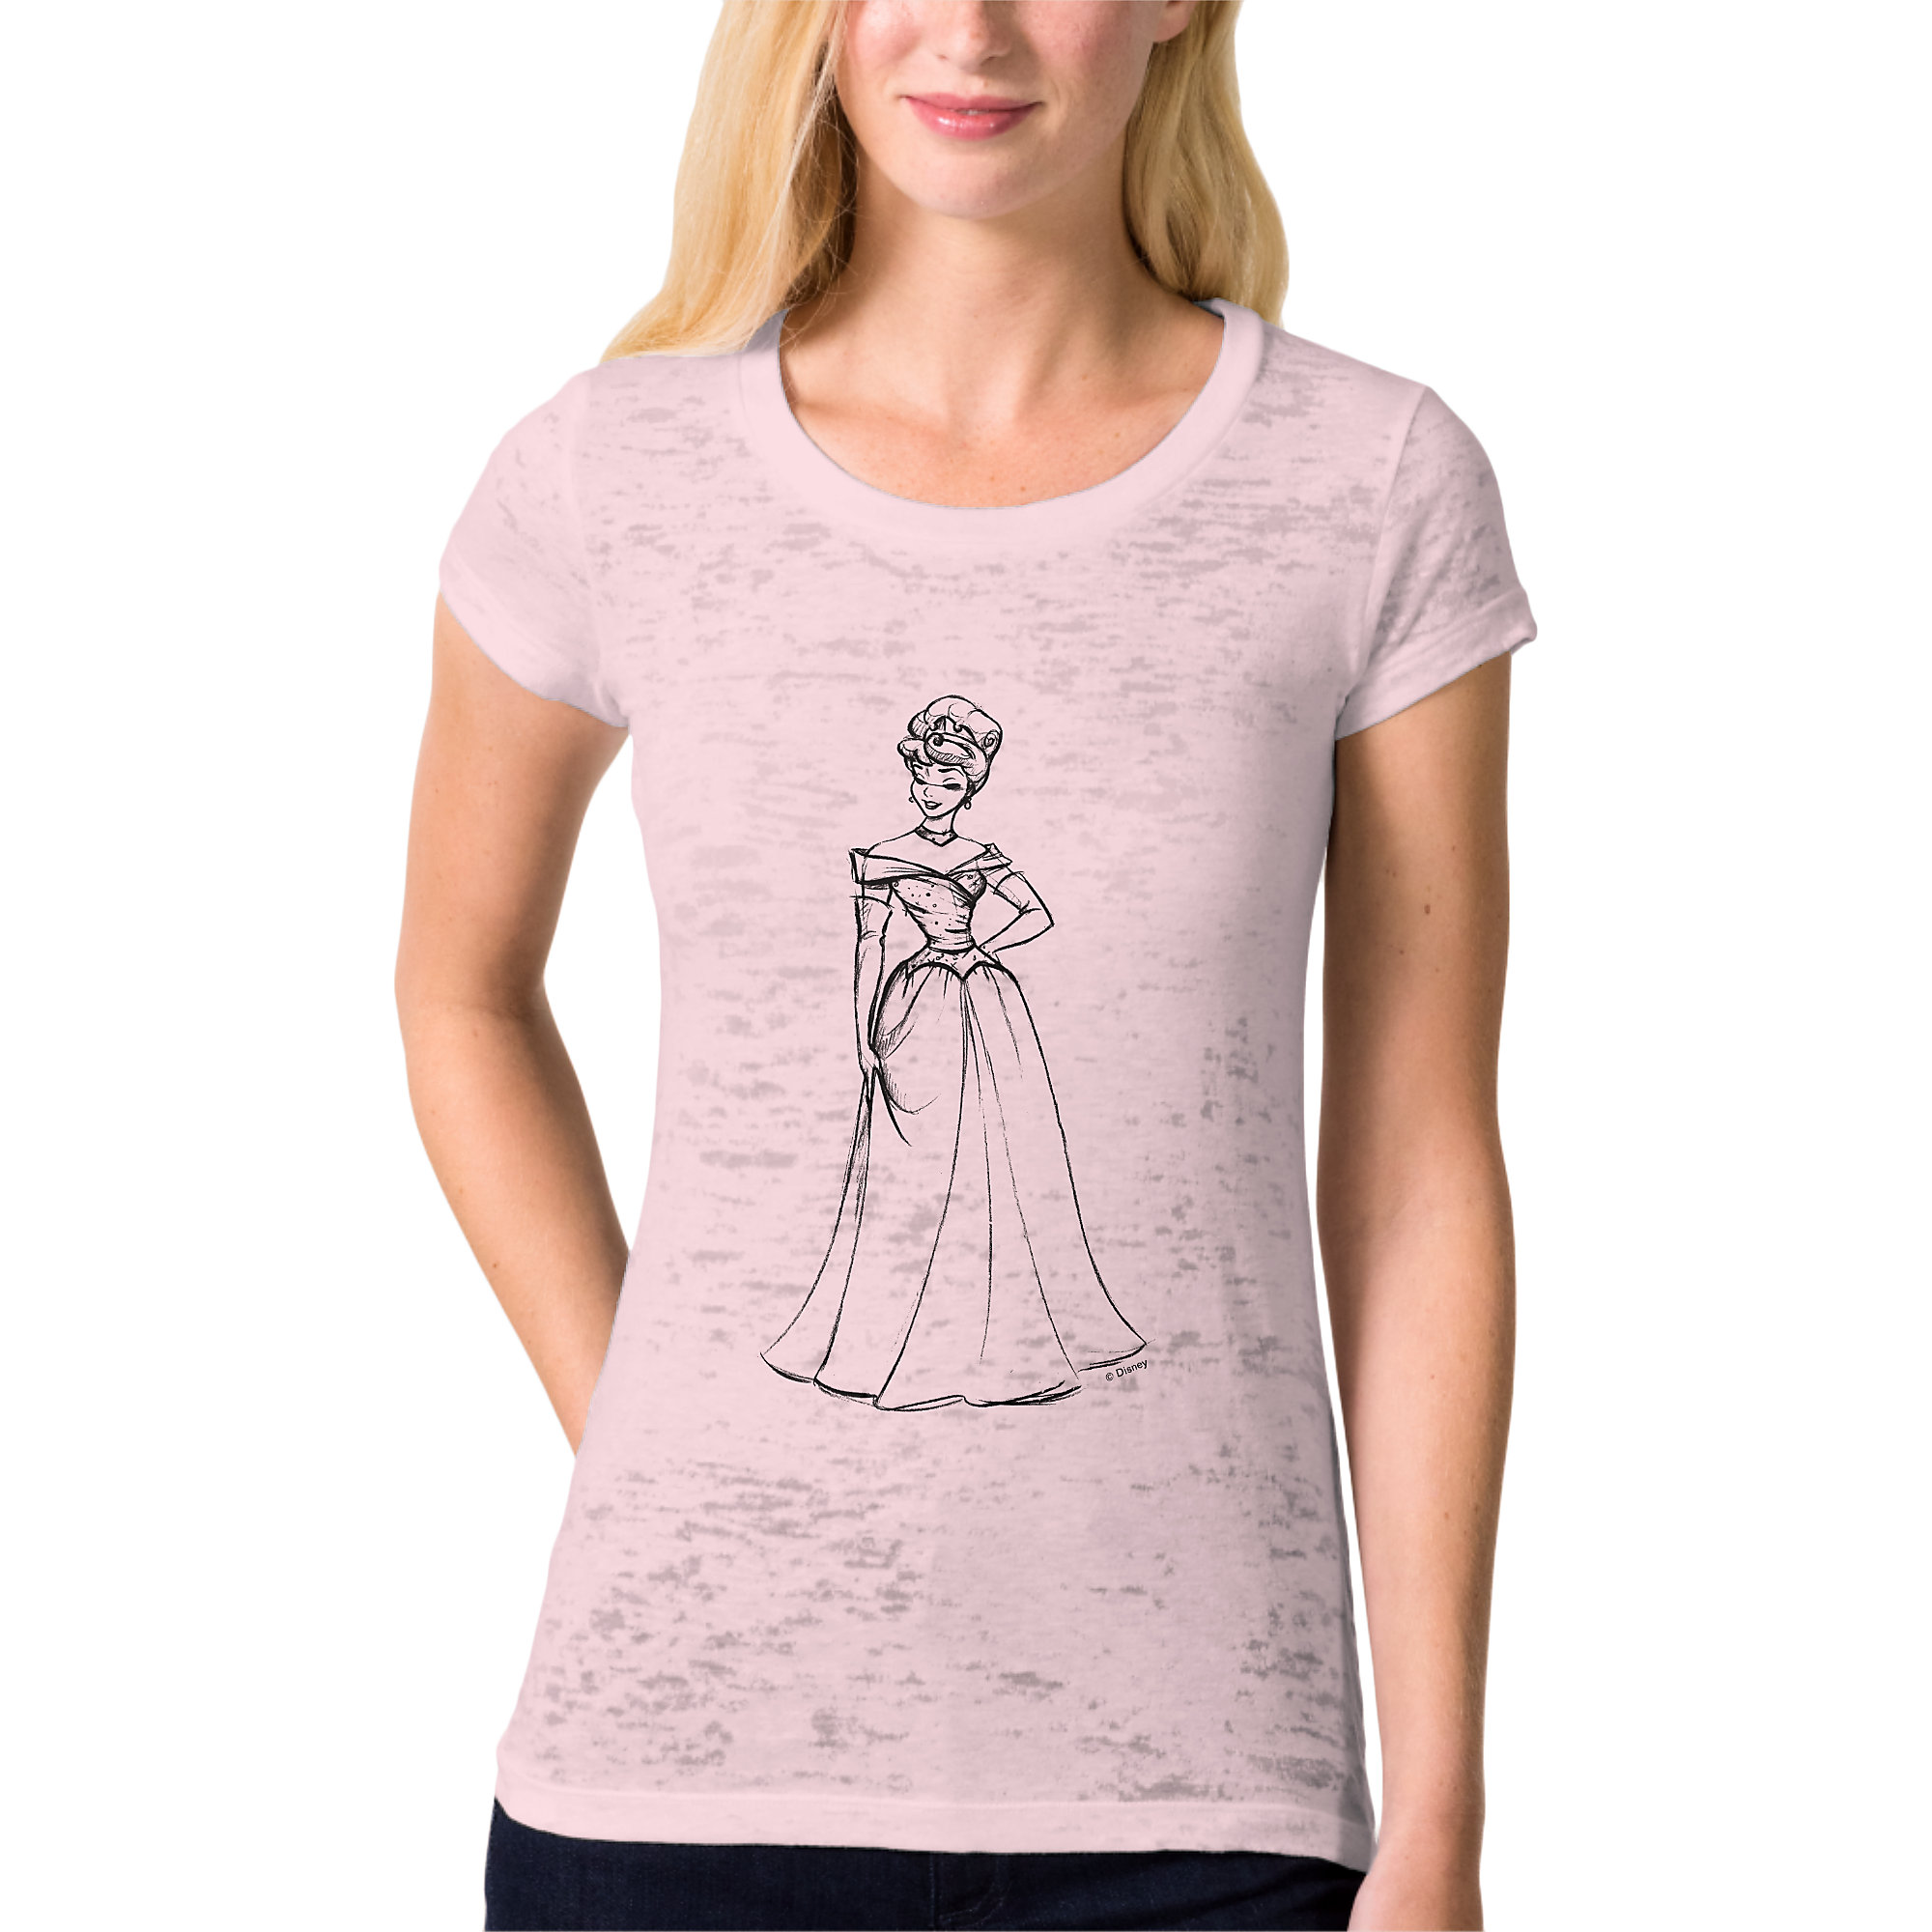 Aurora Burnout Tee for Women - Art of Princess Designer Collection